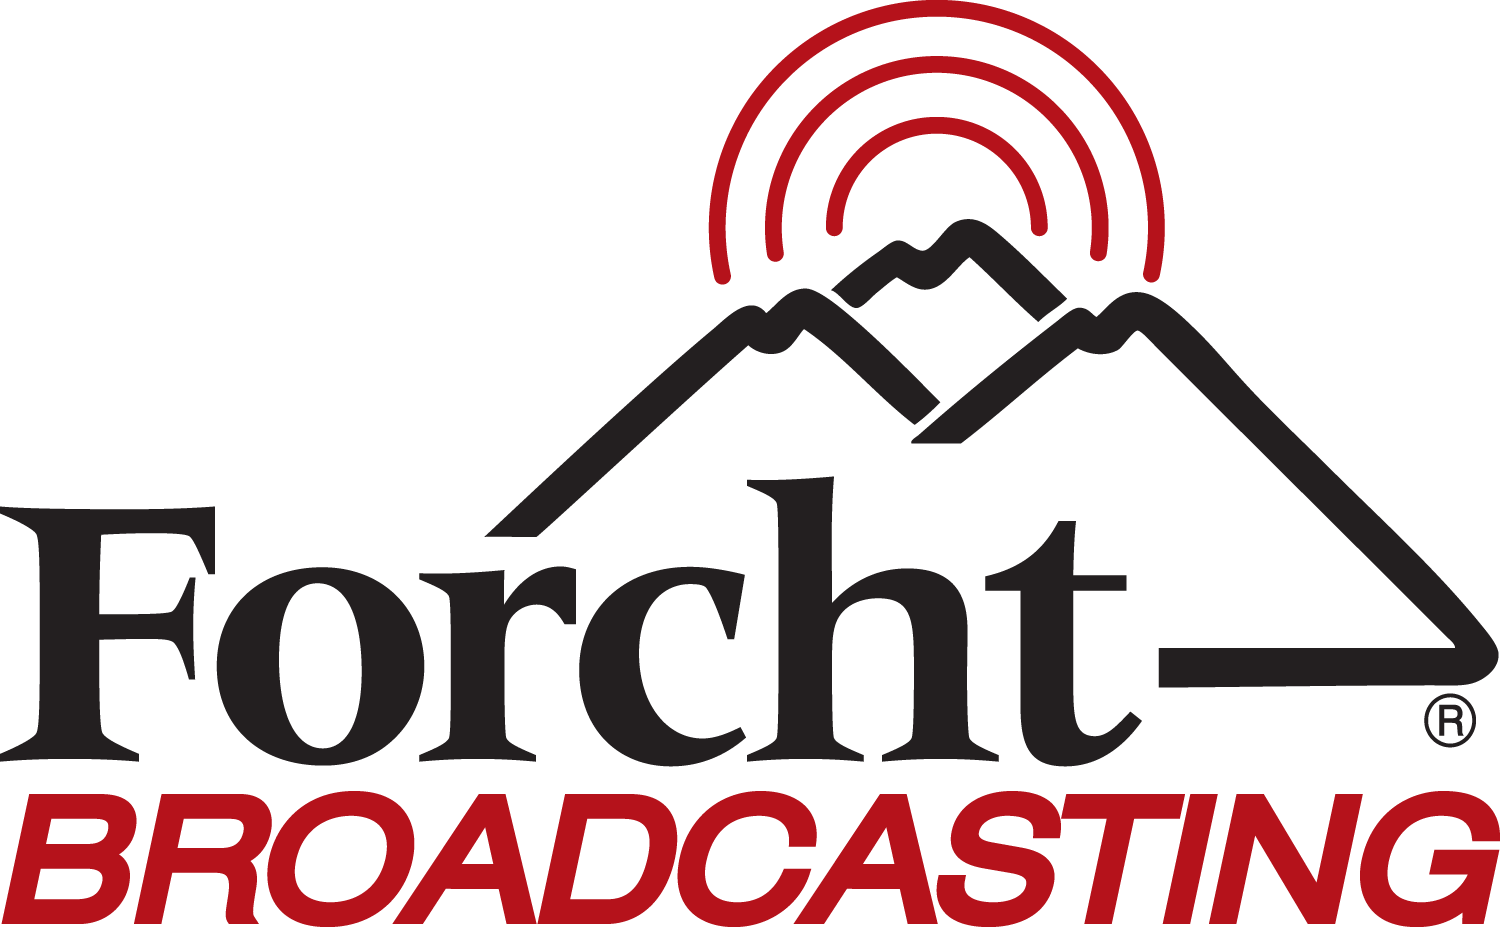 WHOP featured on NEW Forcht Broadcasting website